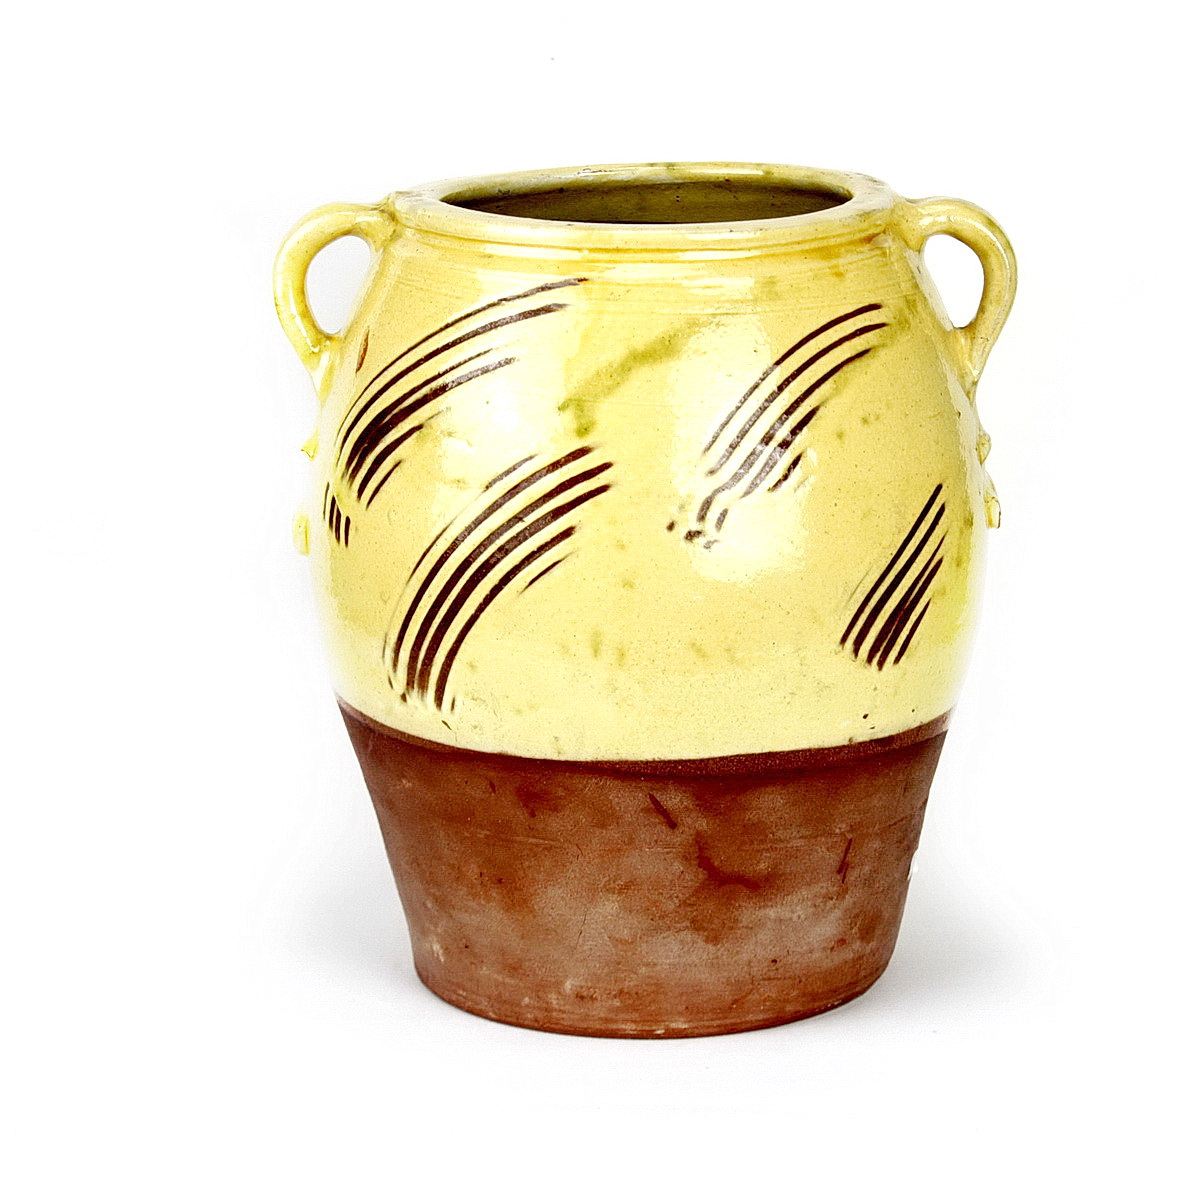 William Marshall large earthenware pot with 2 handles. Yellow glaze to the top of the pot with sgrafitto marks through glaze